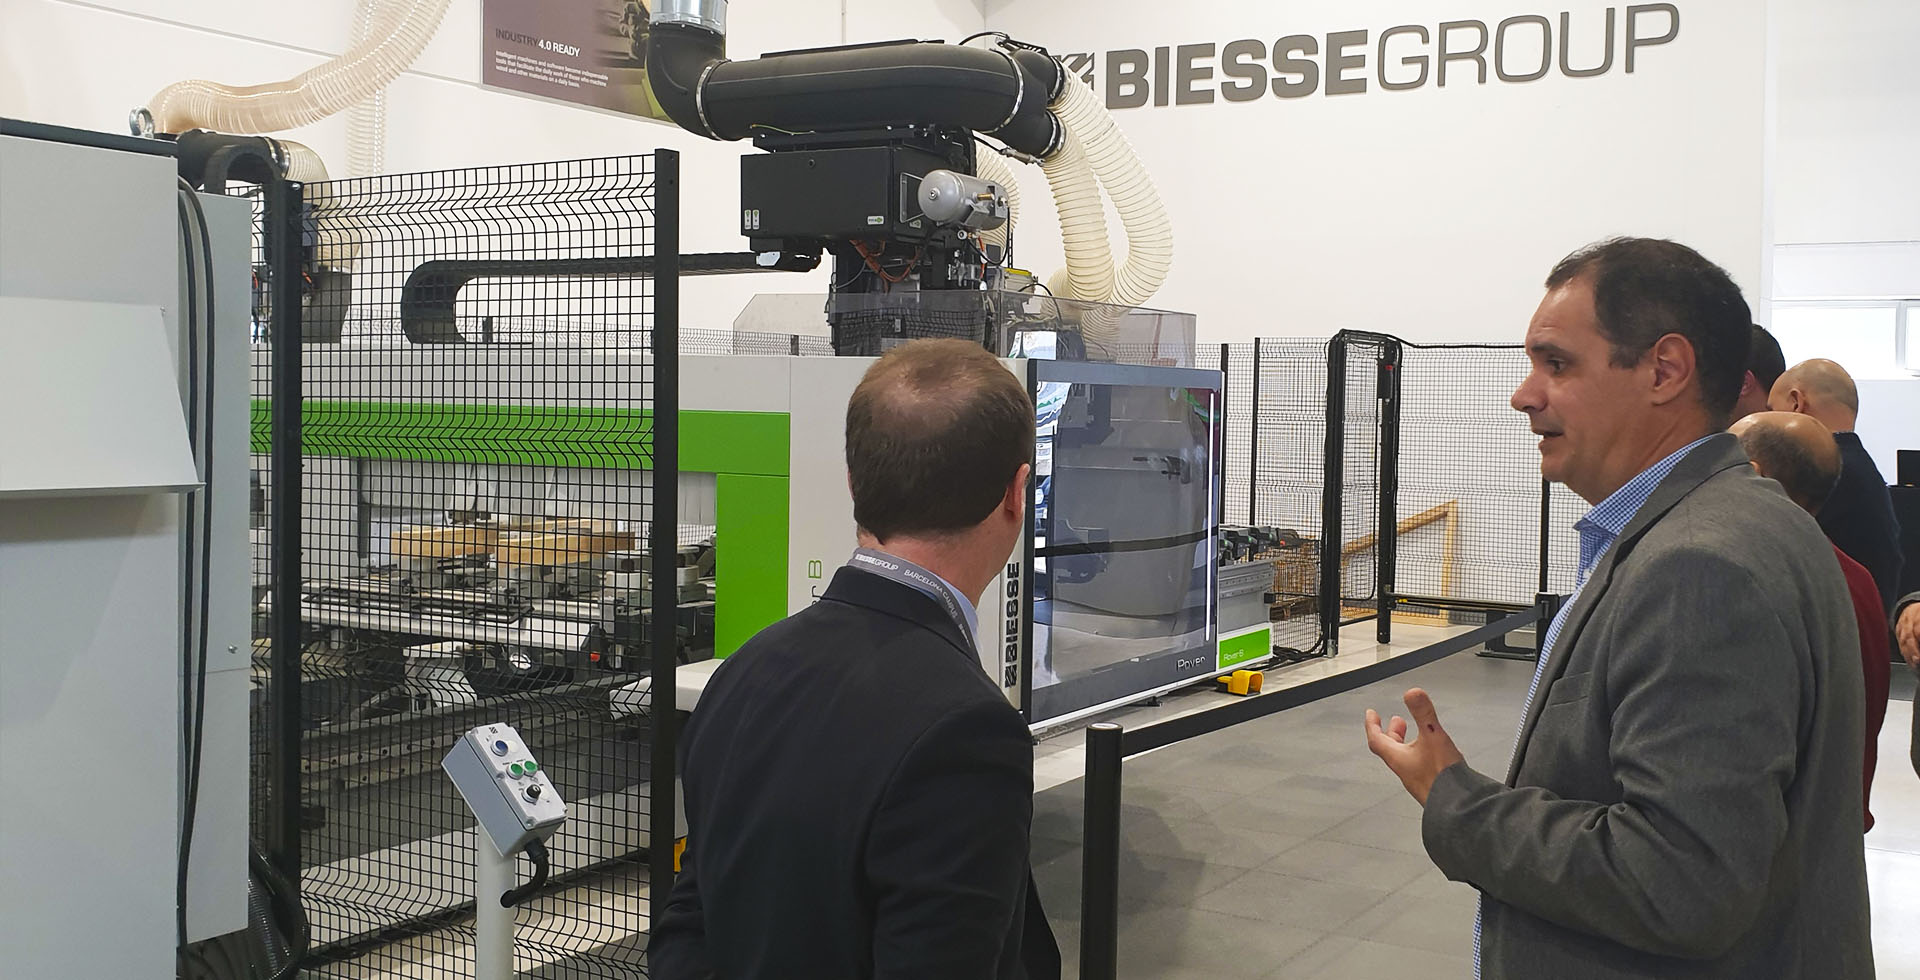 Main Inside Biesse Ibérica 2019: Photo 1